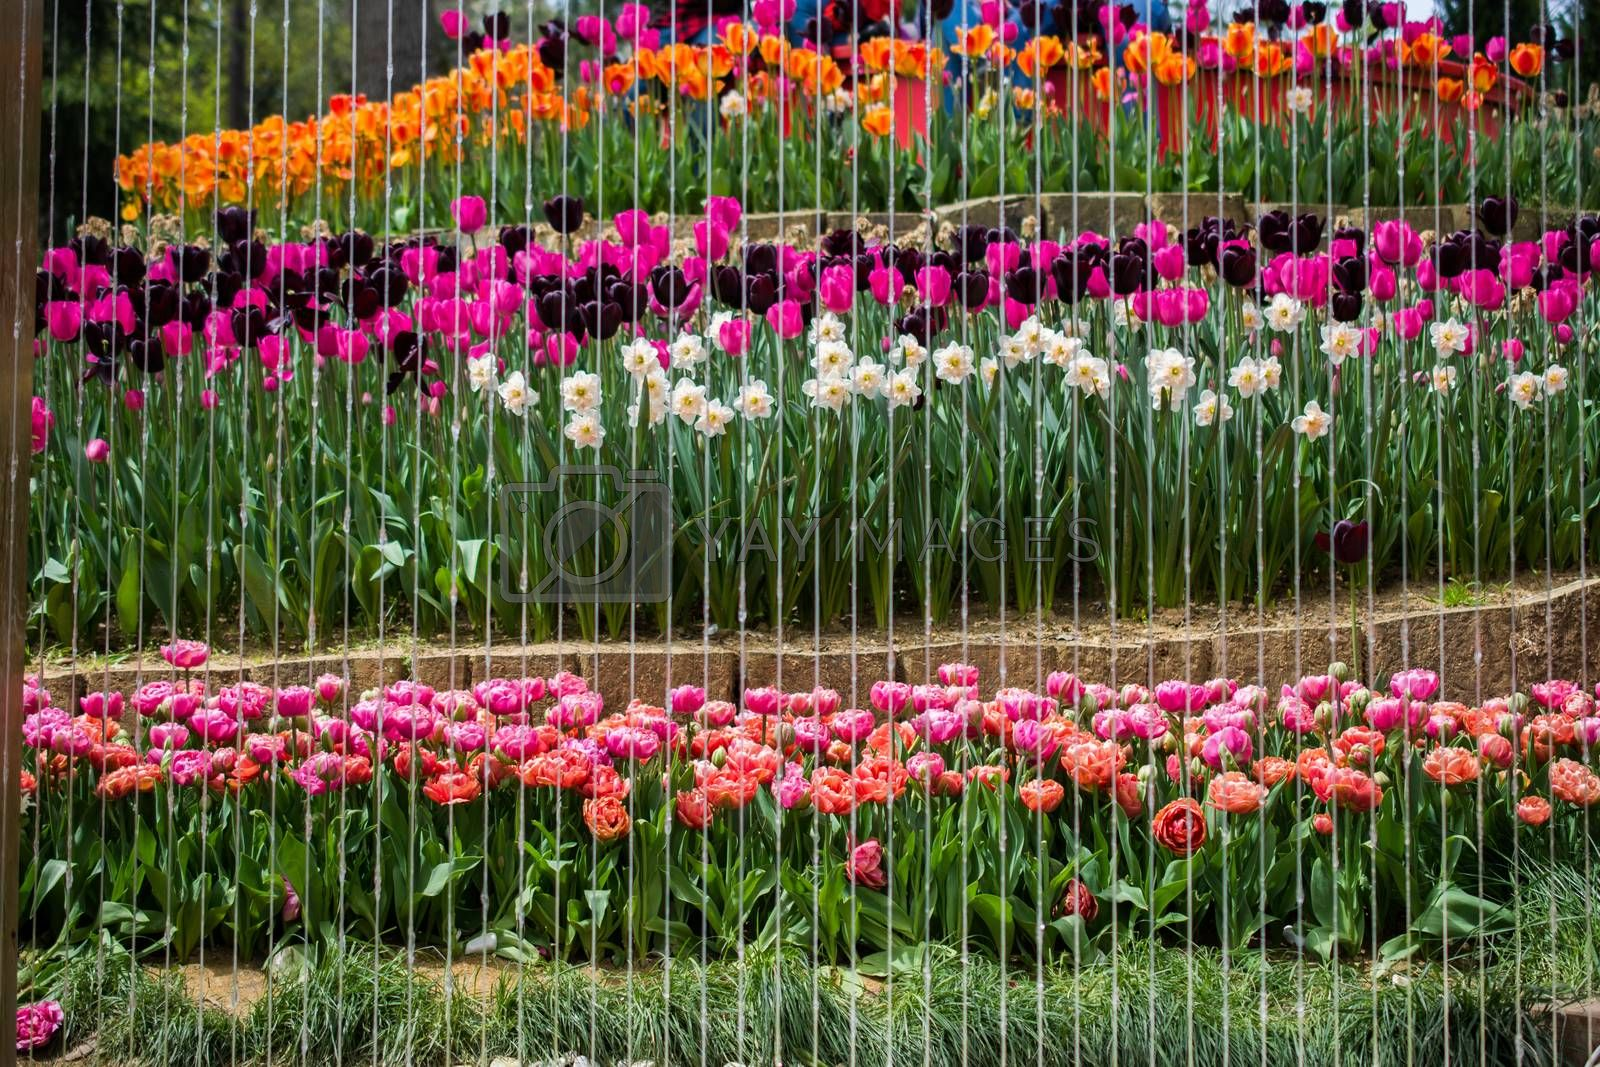 Colorful tulip flowers bloom in the spring  garden